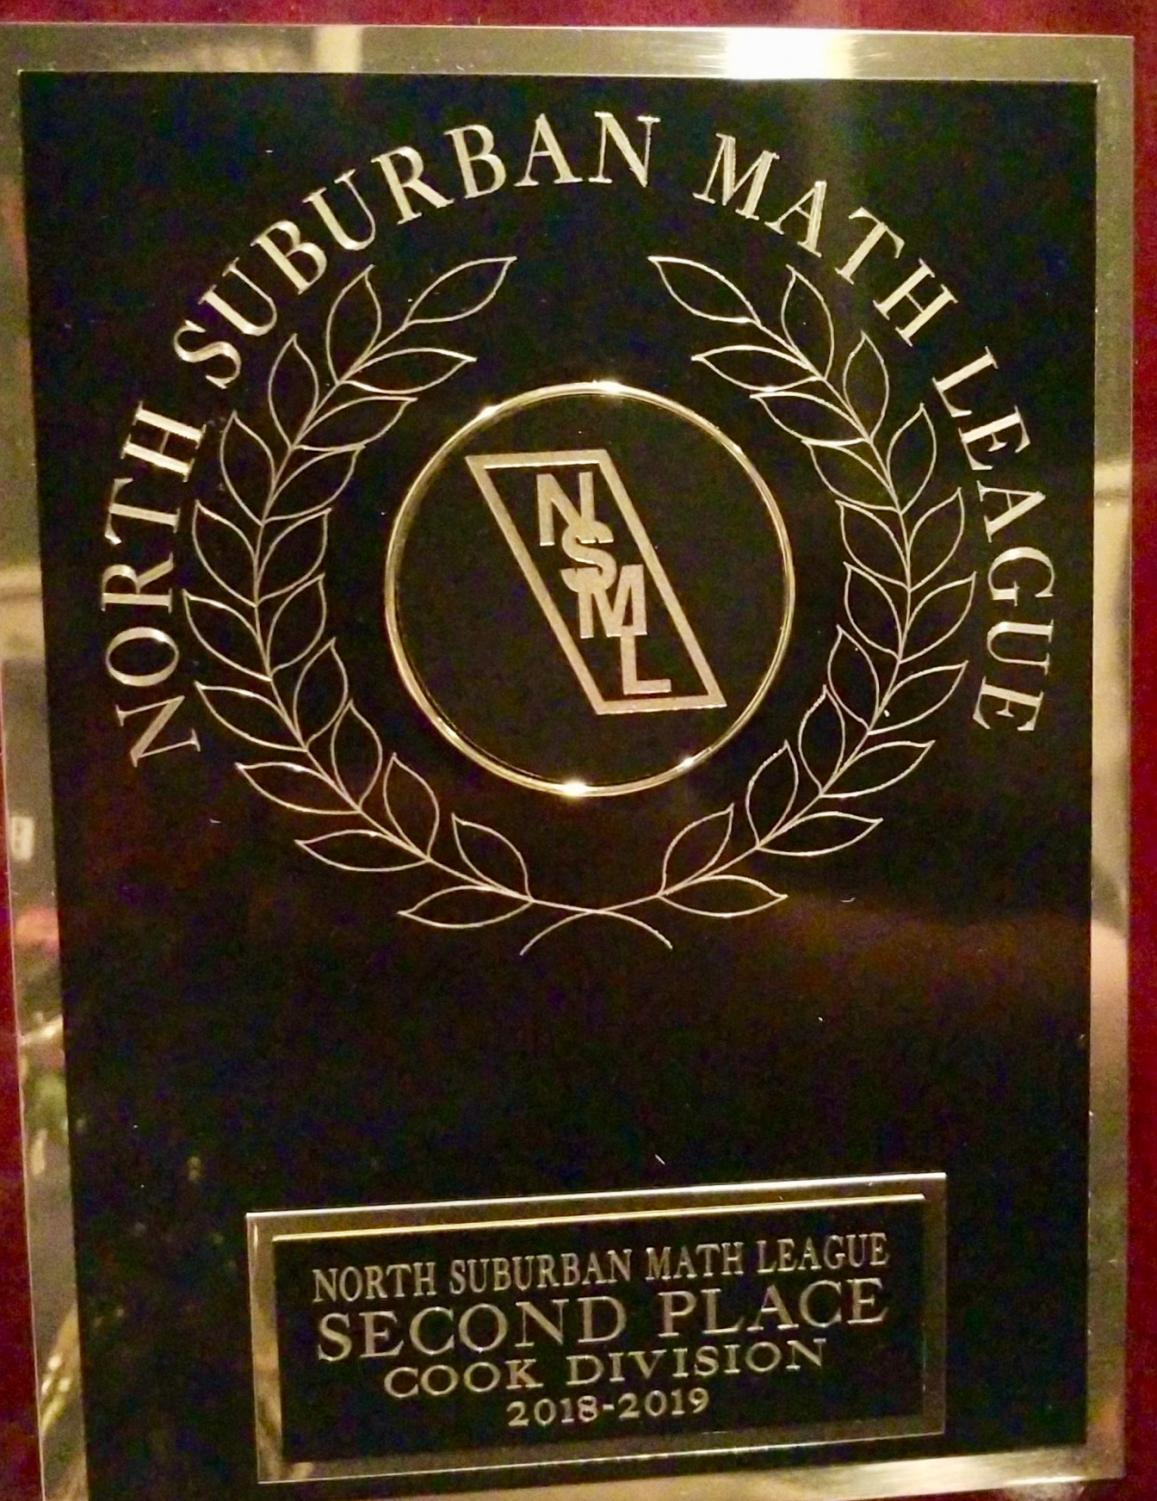 One of the plaques math team received at the NSML conference meet.